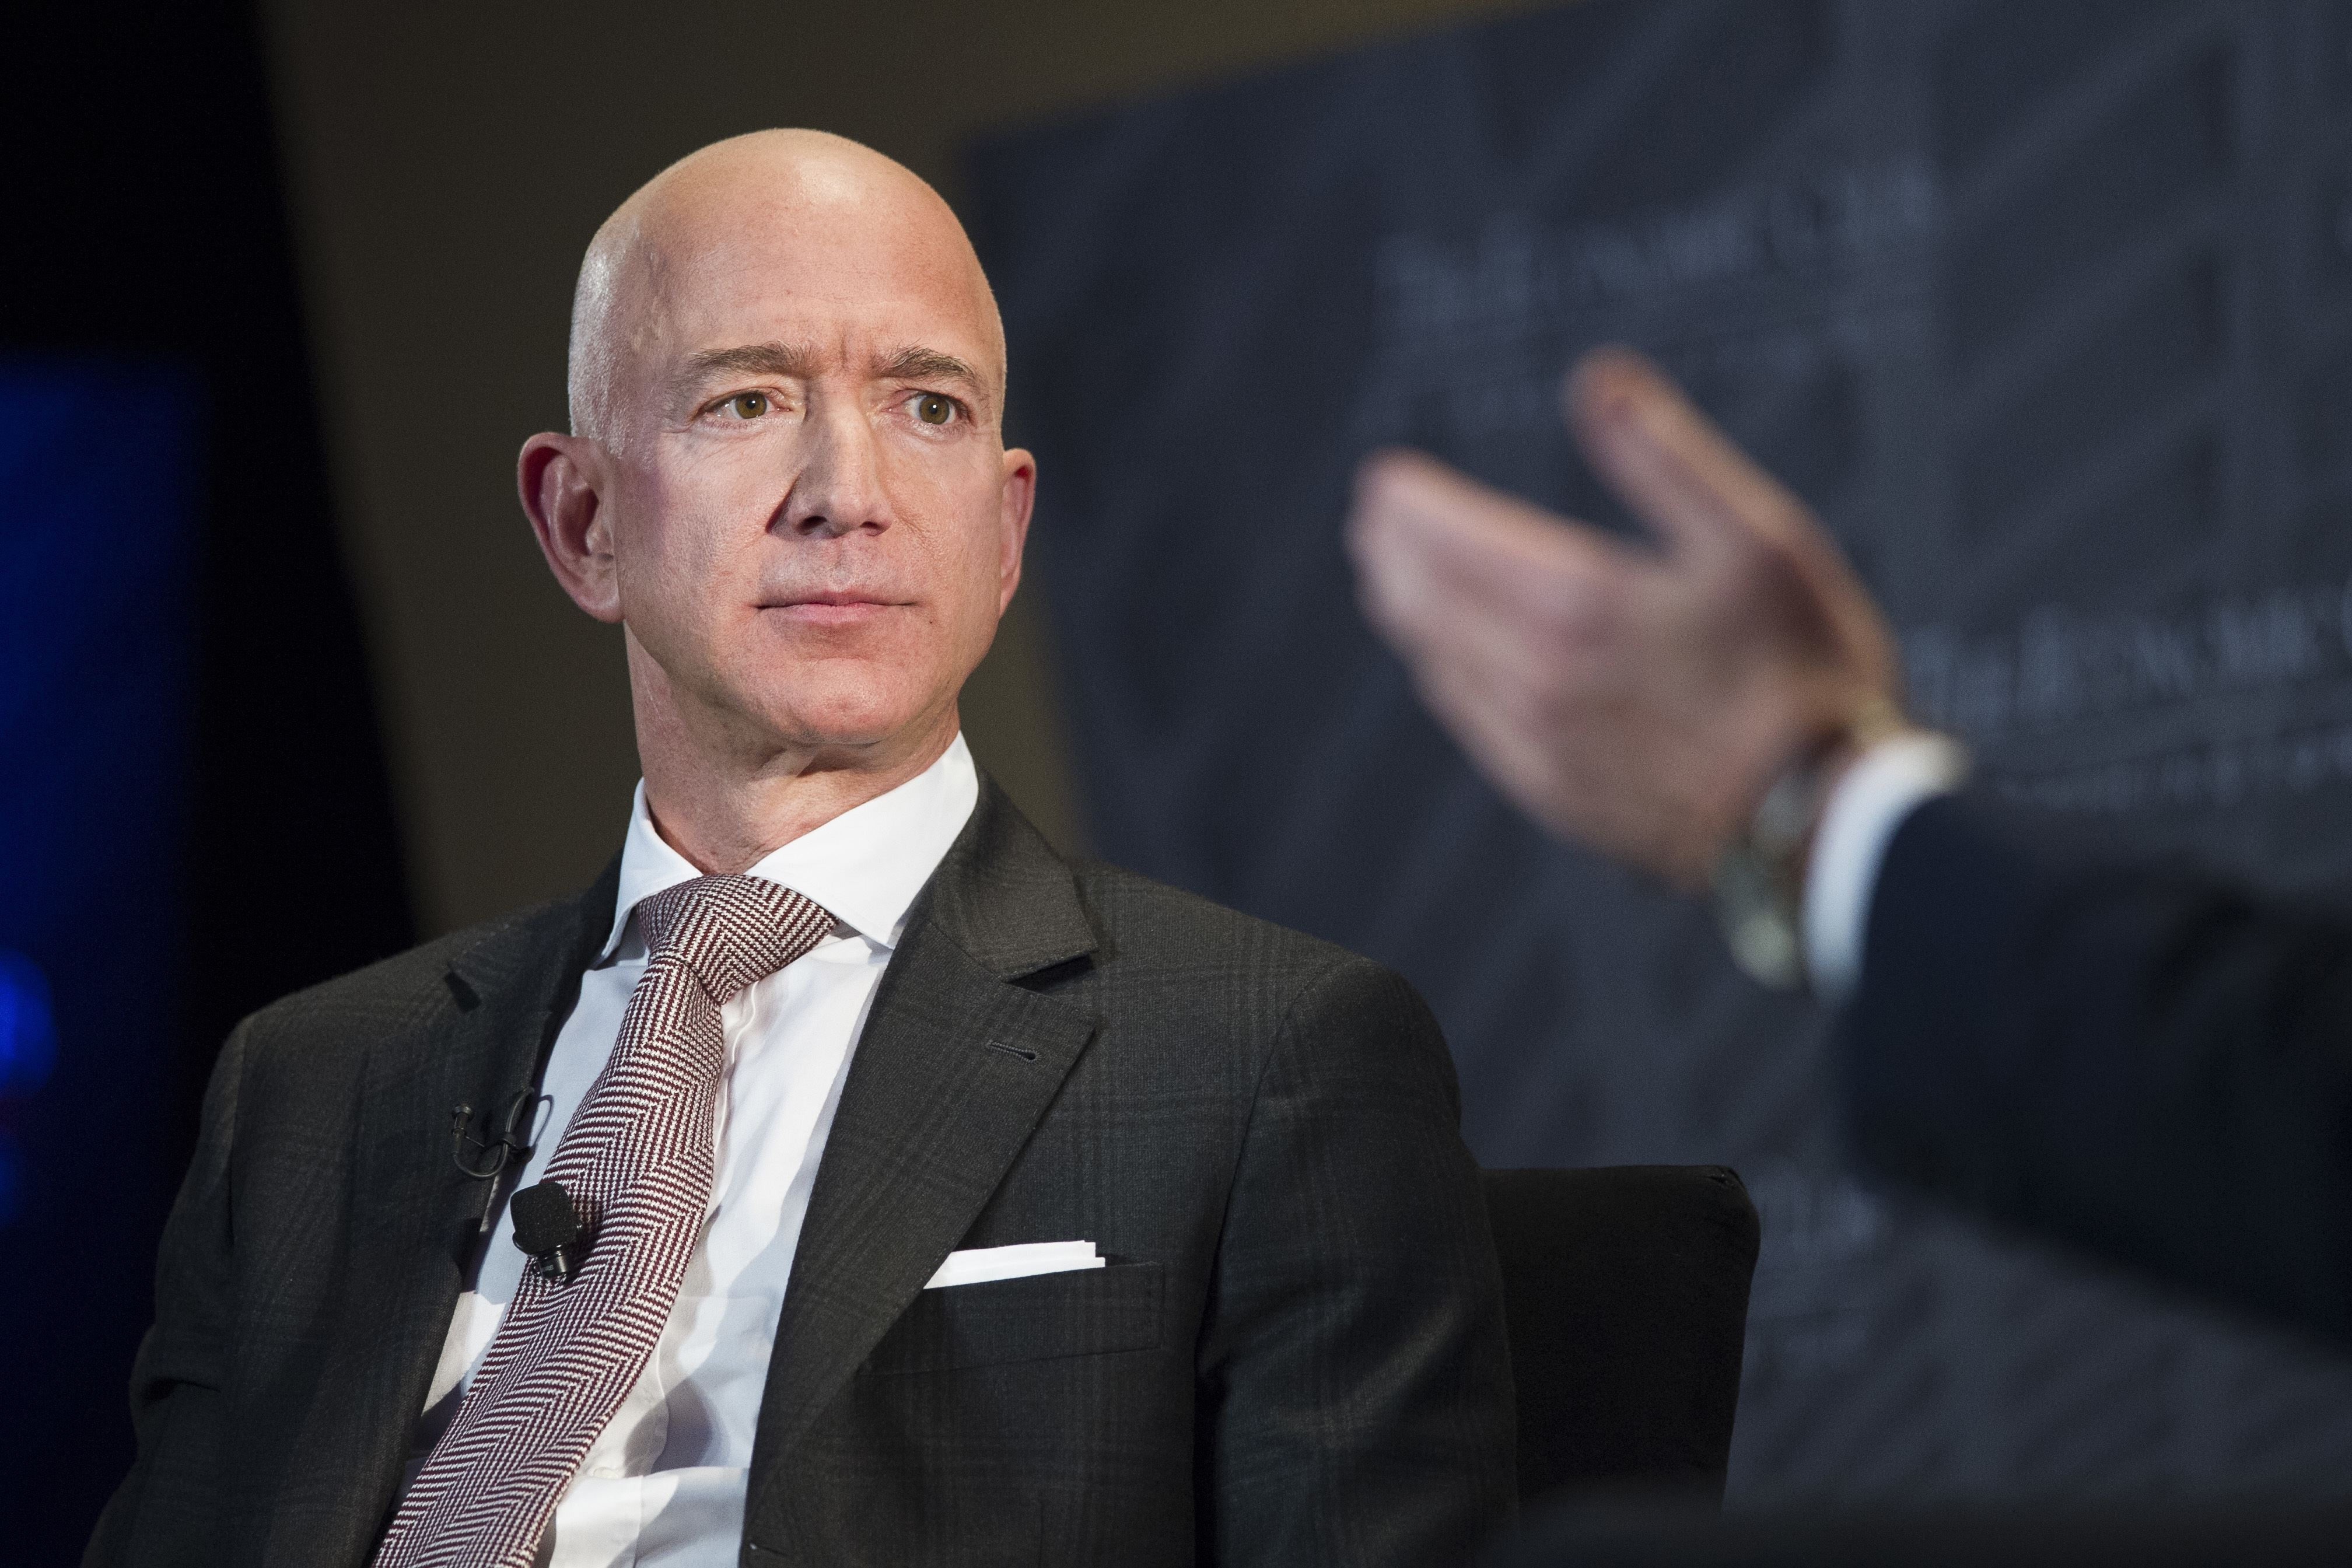 Enquirer Paid Mightily for the Bezos Texts: WSJ